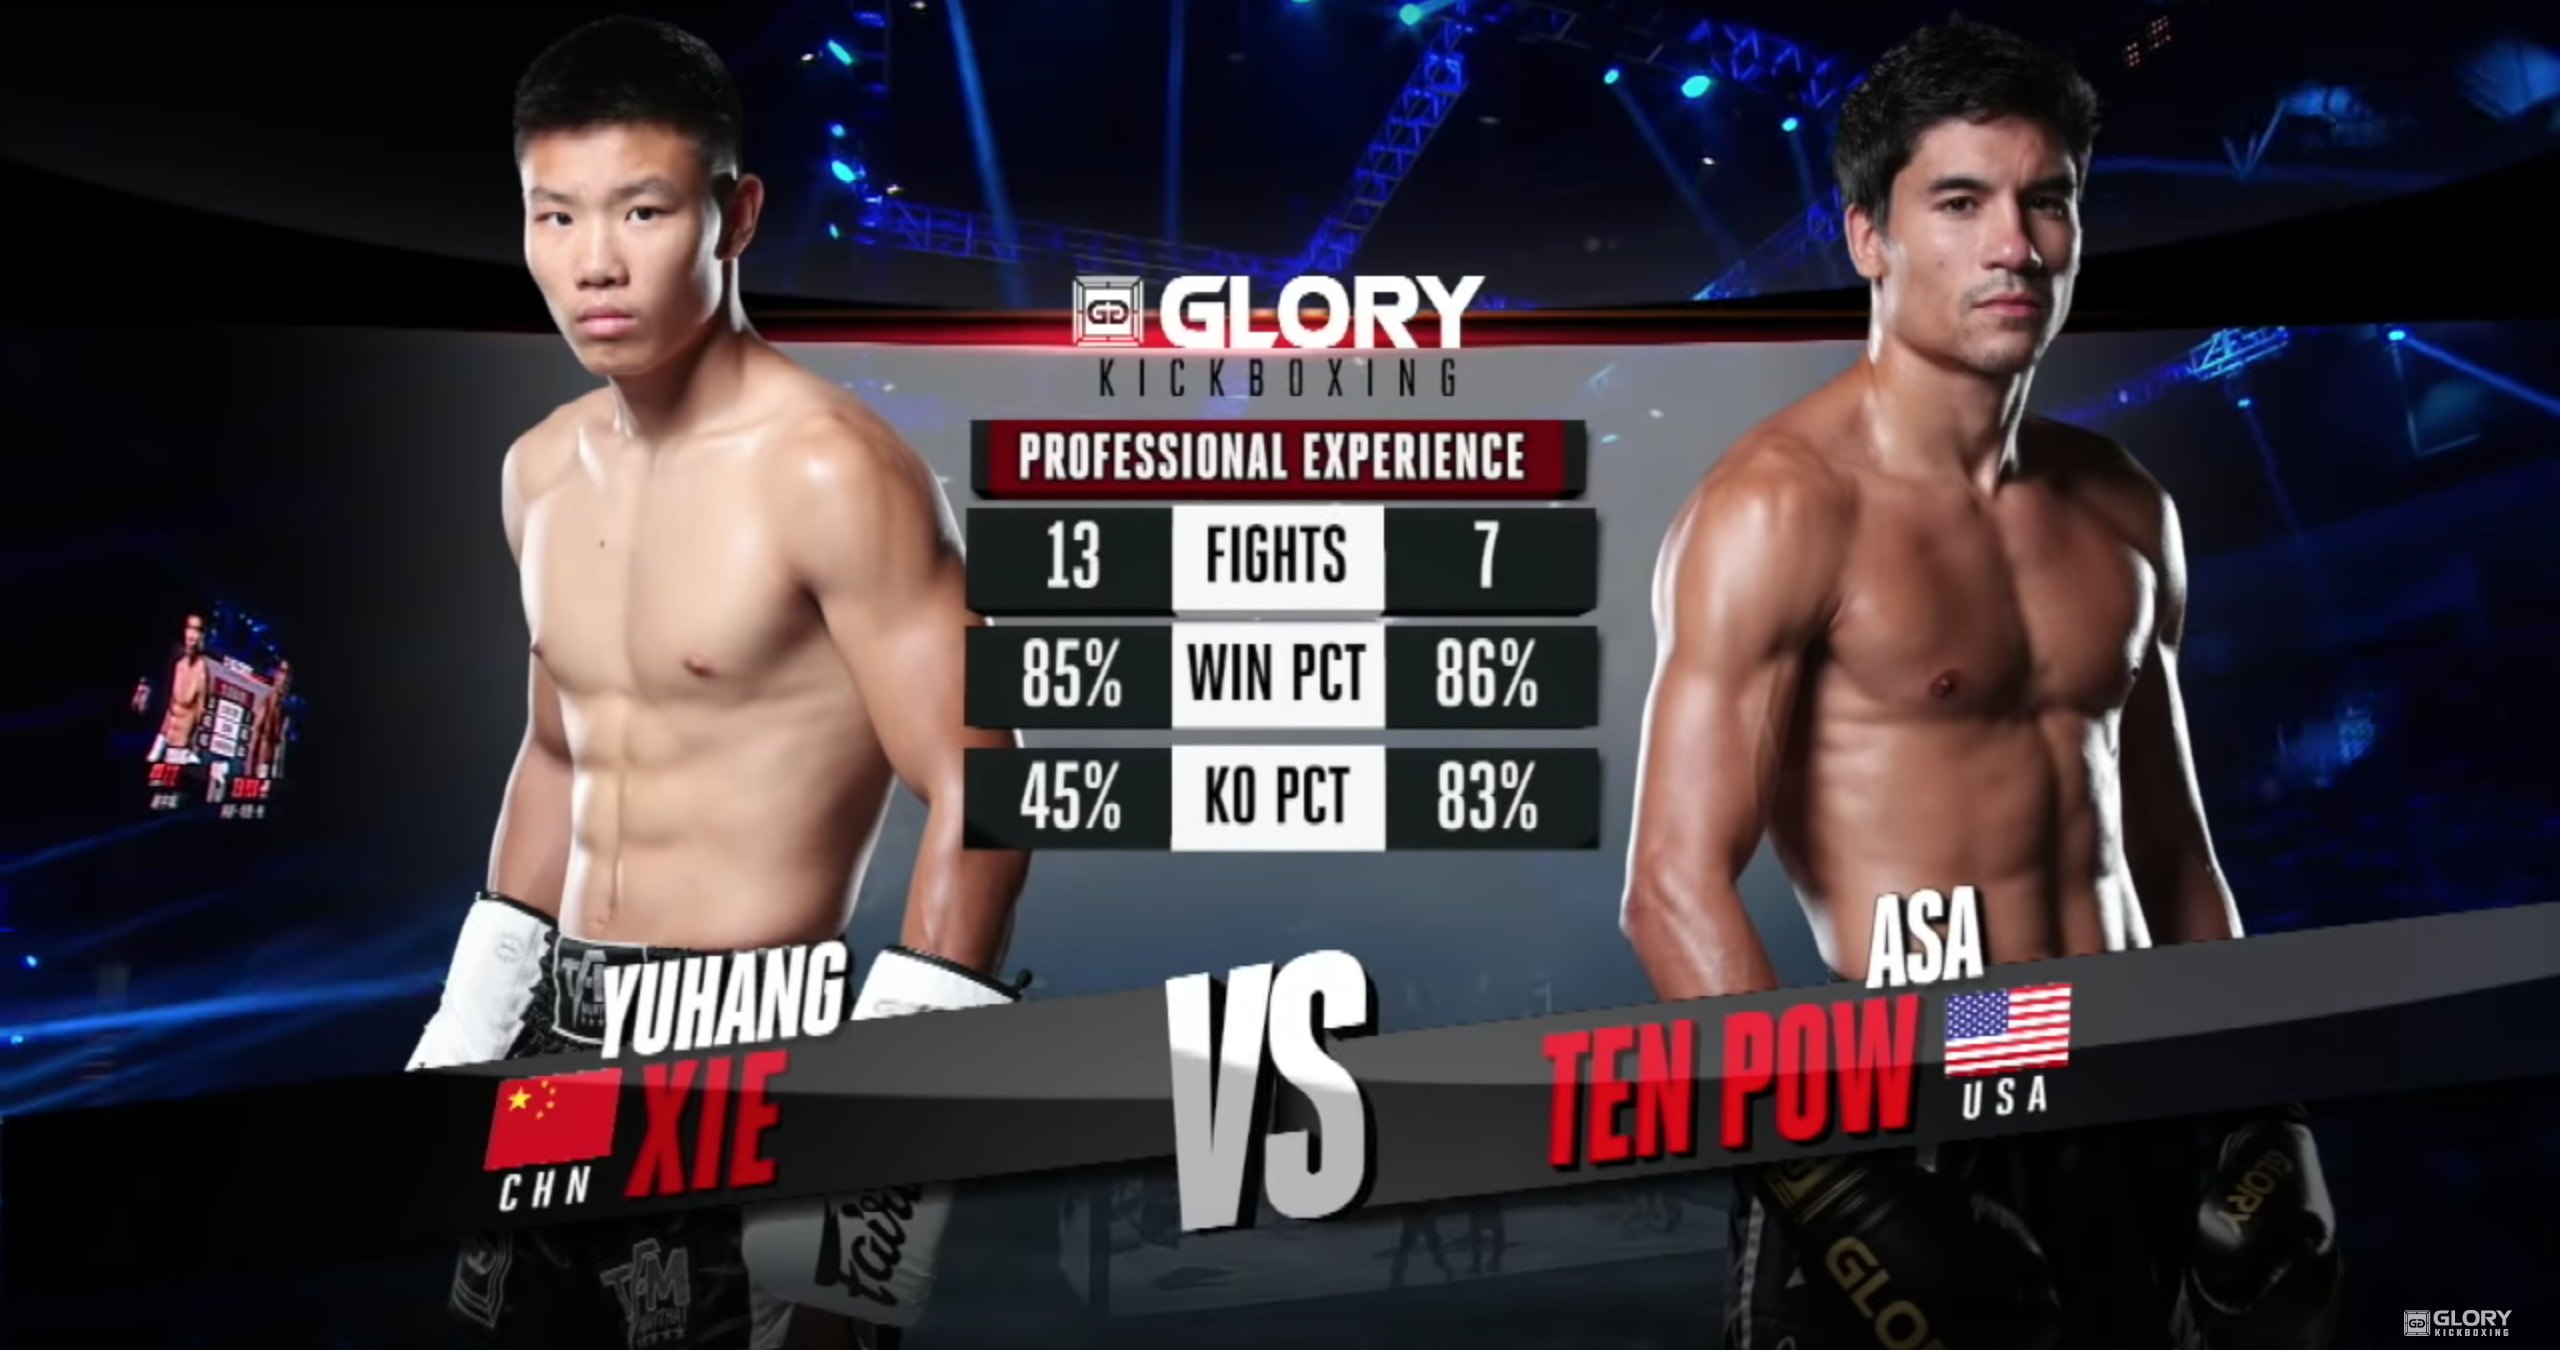 GLORY 57: Asa Ten Pow vs. Yuhang Xie - Full Fight